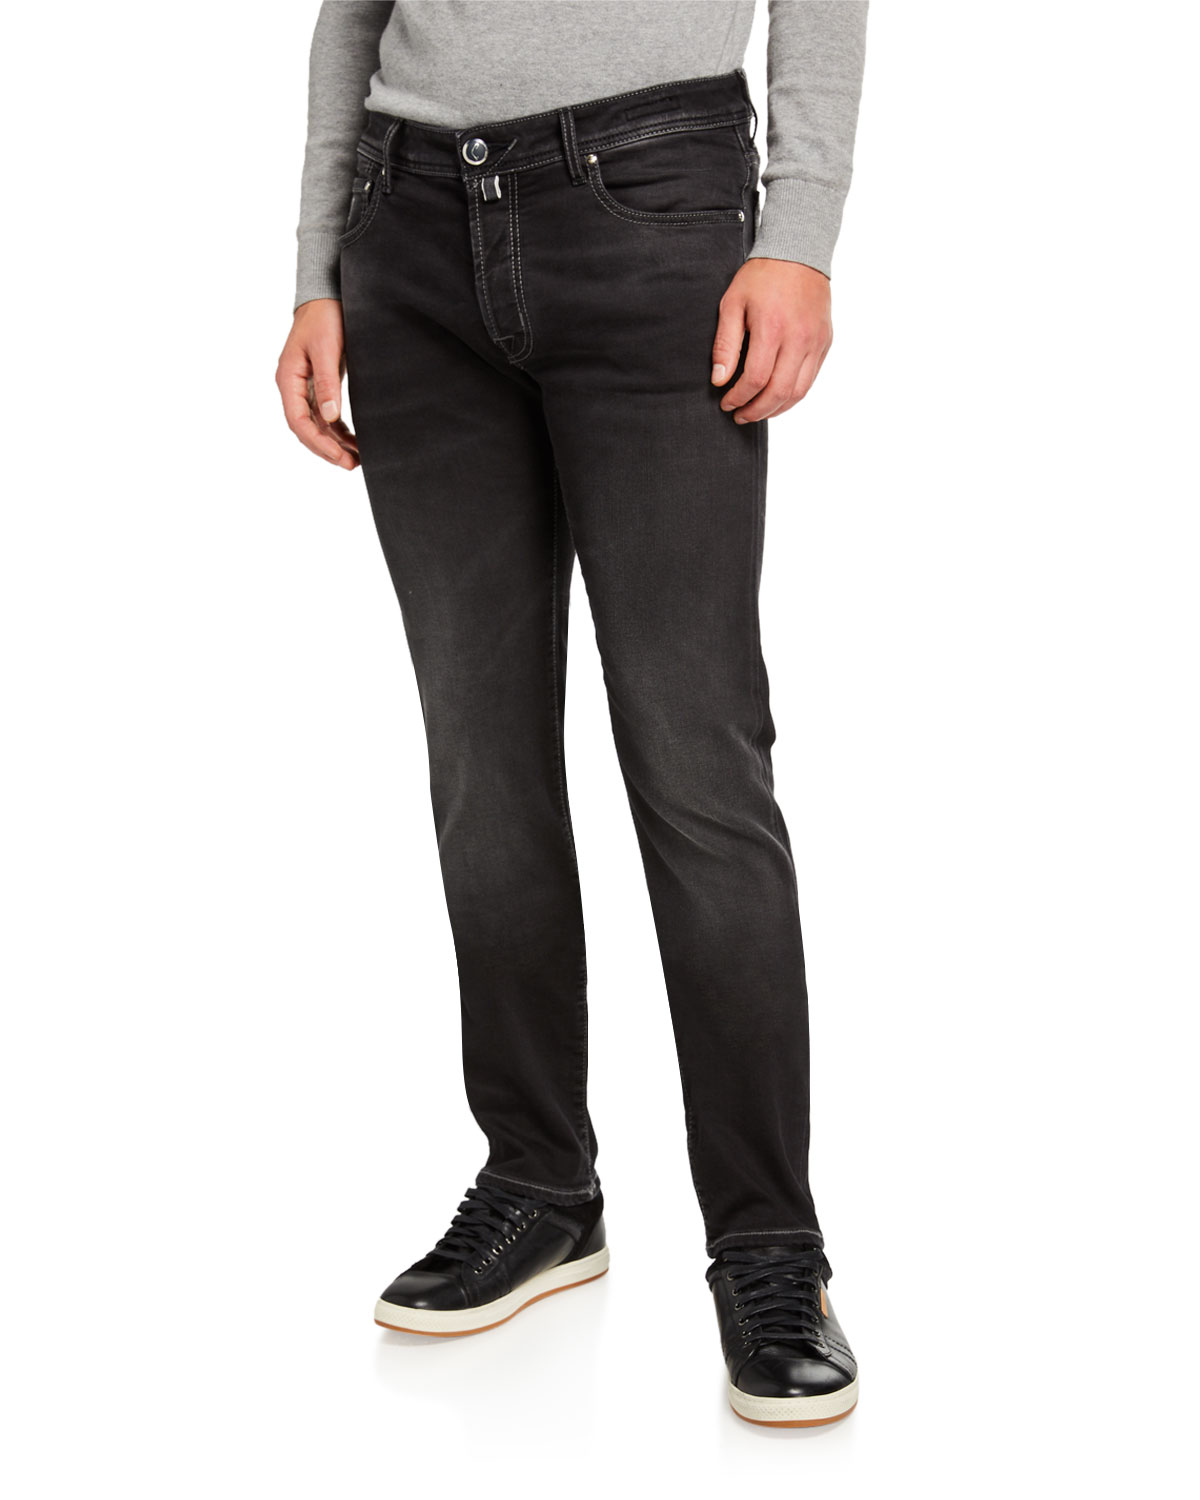 Jacob Cohen Jeans MEN'S LIMITED EDITION DARK STRETCH-DENIM JEANS